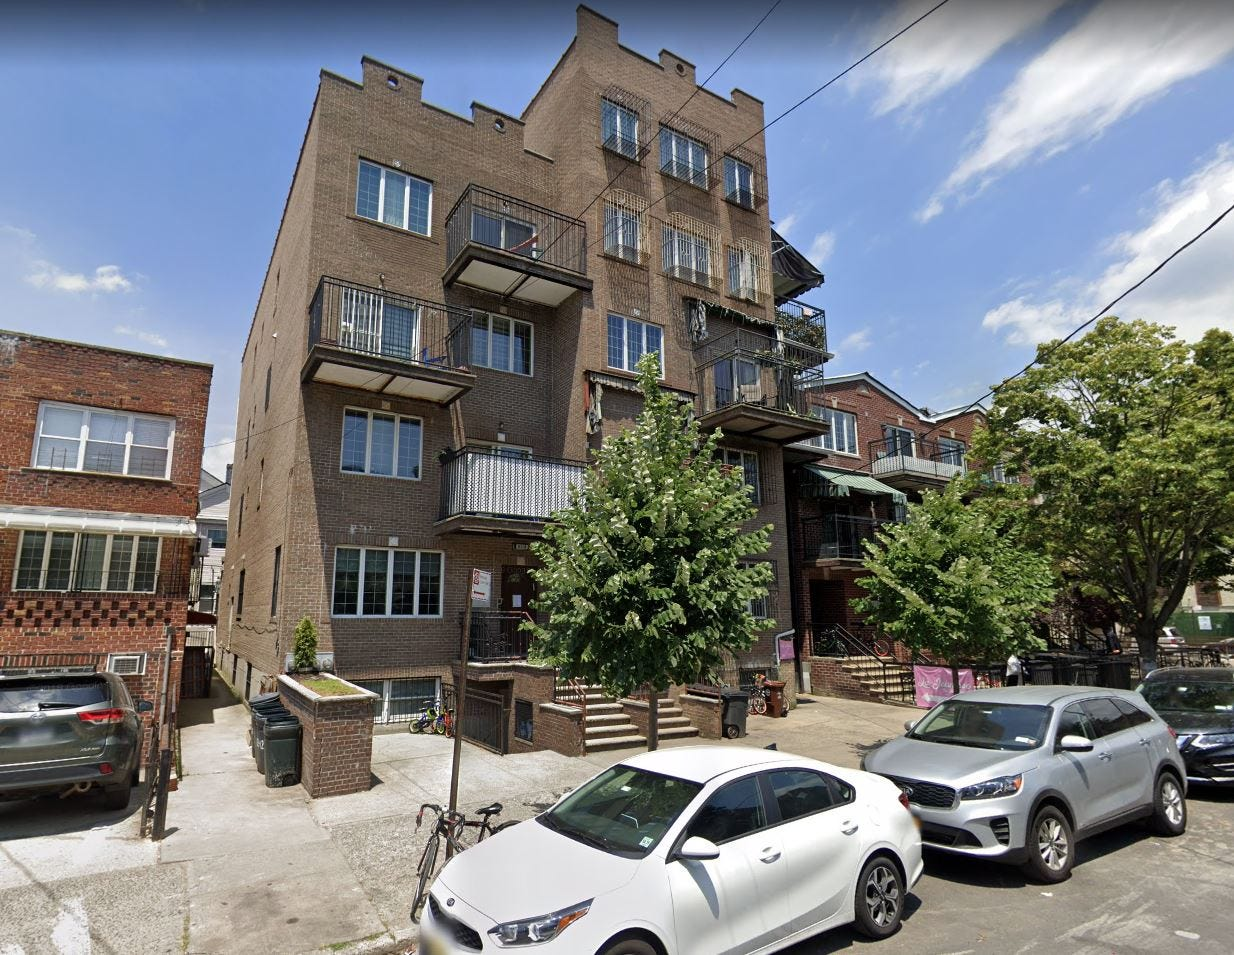 GlobalGeeks filed a federal lawsuit in June against SZN LLC, another middleman, which brokered the transaction from a Brooklyn apartment.